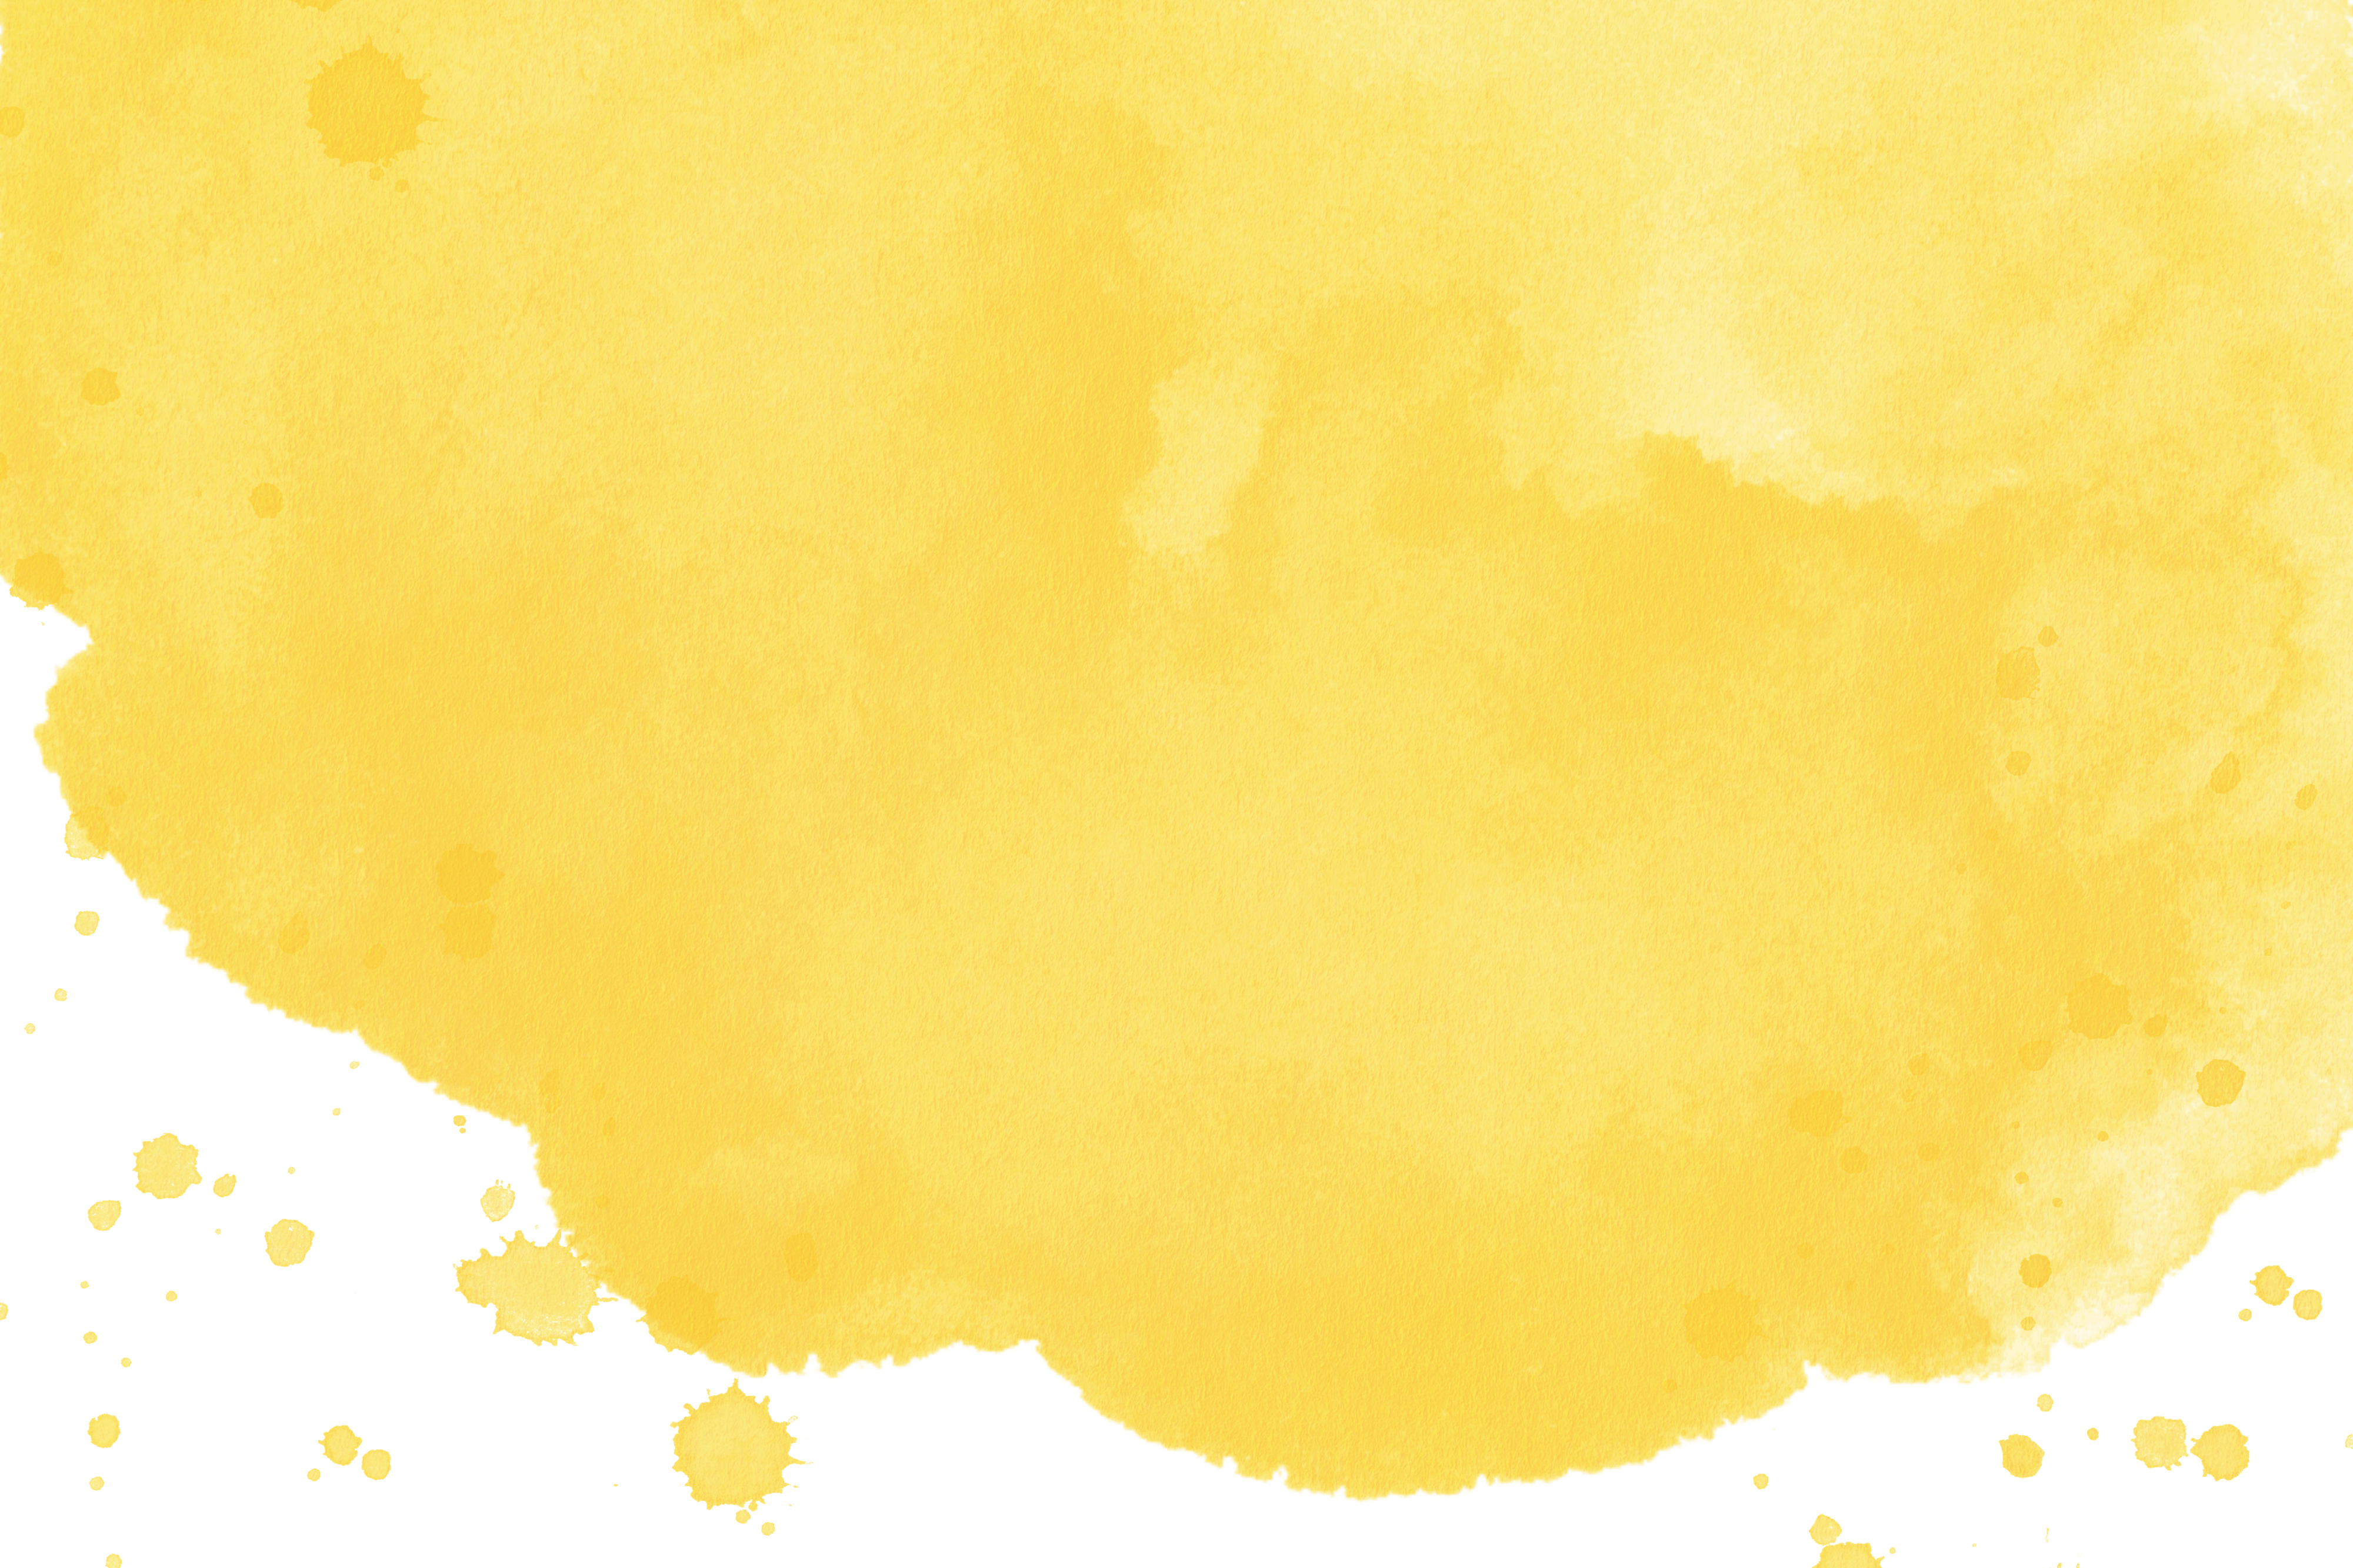 Yellow Watercolor Background Material Poster Watercolor Yellow Background Image For Free Download